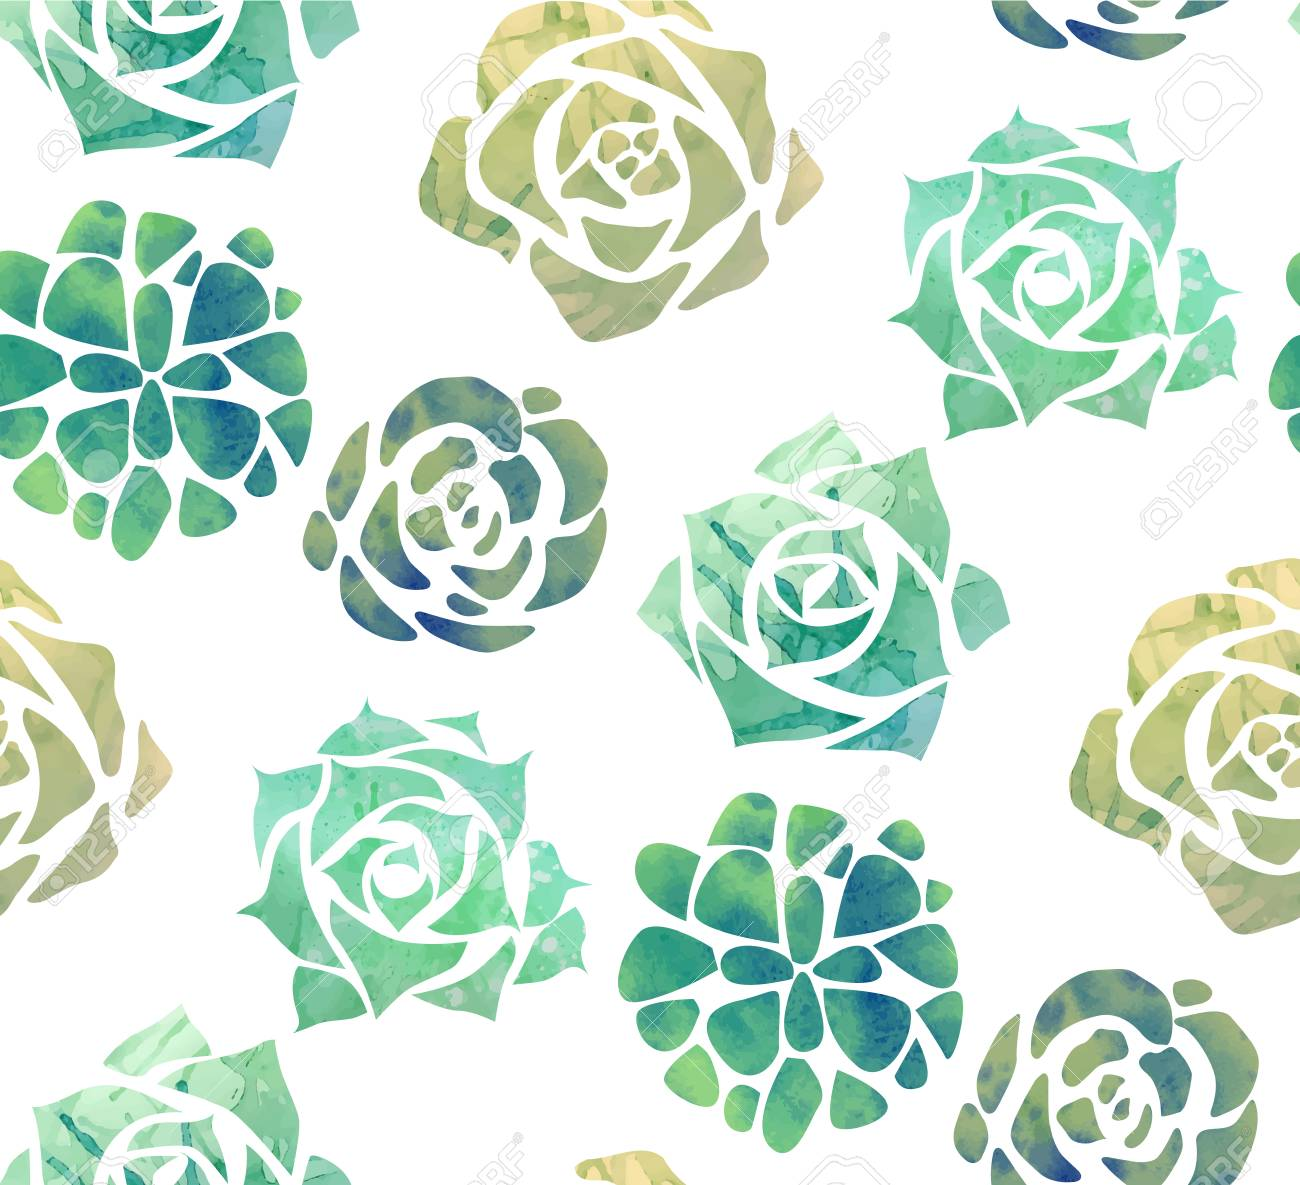 Seamless Texture With Watercolor Succulents On A White Background Royalty Free Cliparts Vectors And Stock Illustration Image 99466104